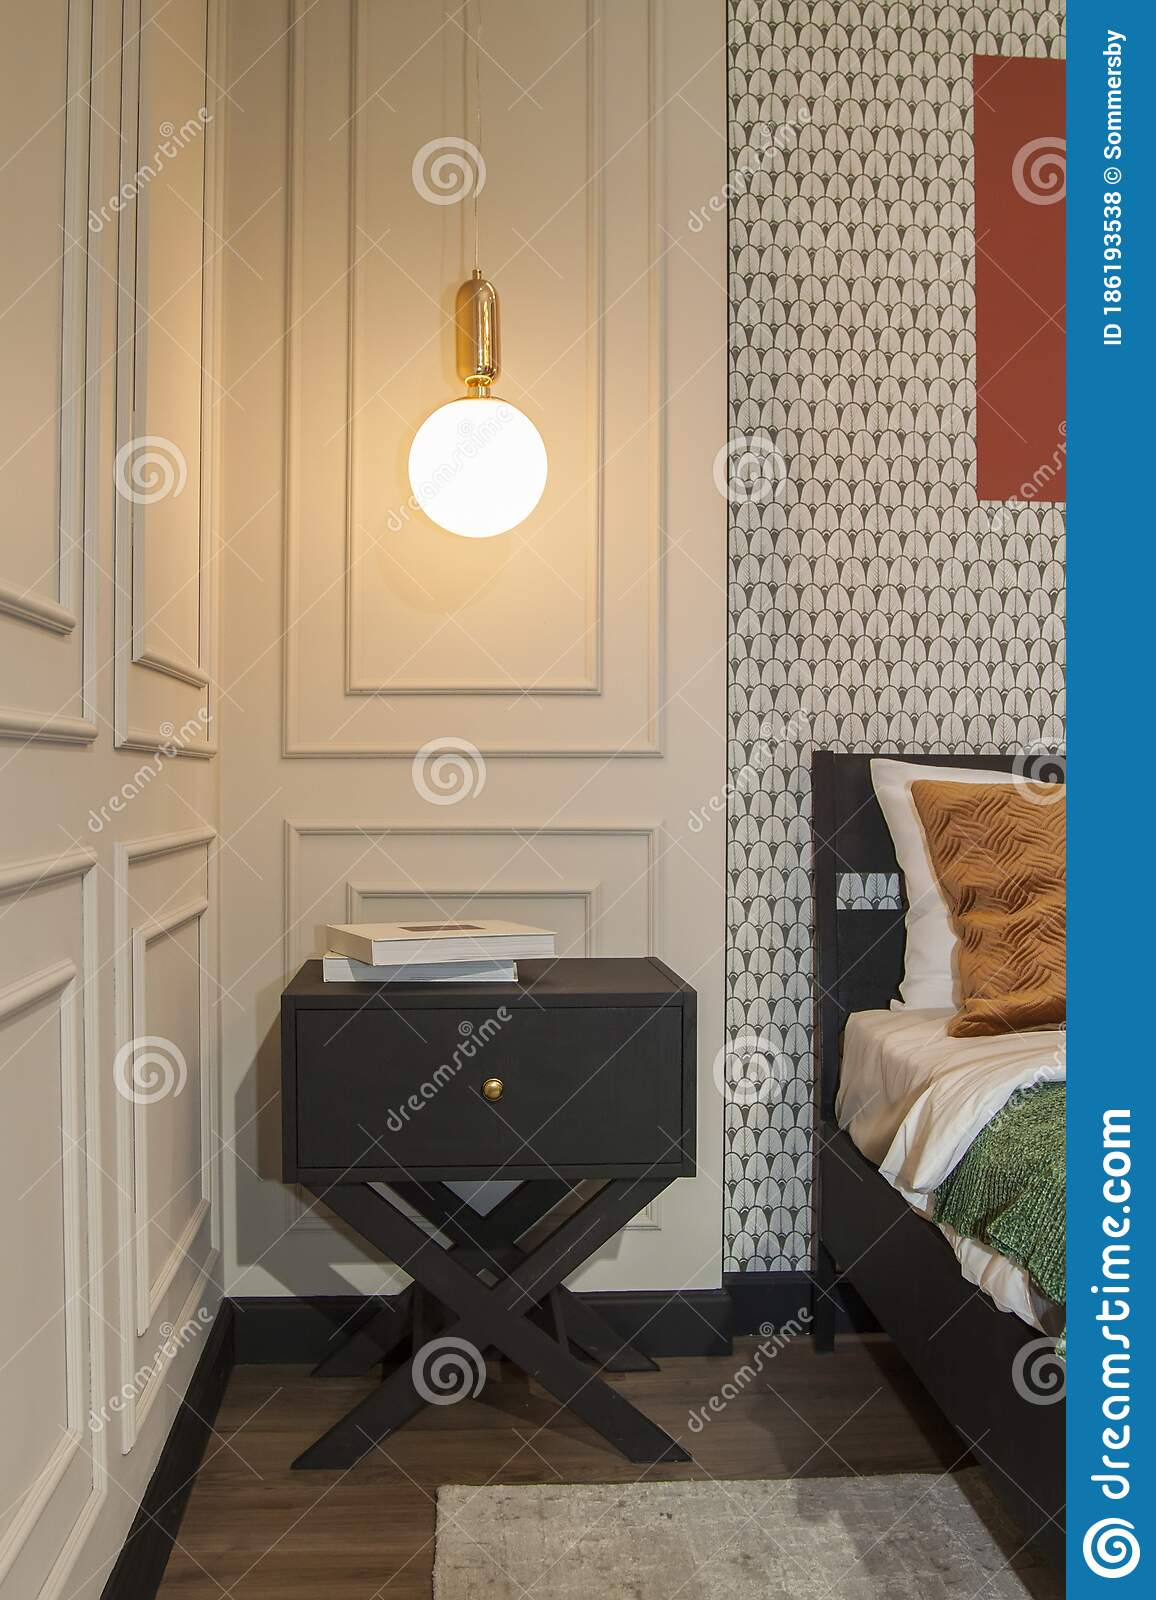 Lamp Hangs Over The Bedside Table And A Bed With Decorative Pillows And A Wooden Headboard In The Bedroom In The Apartment Stock Photo Image Of Lifestyle Cozy 186193538